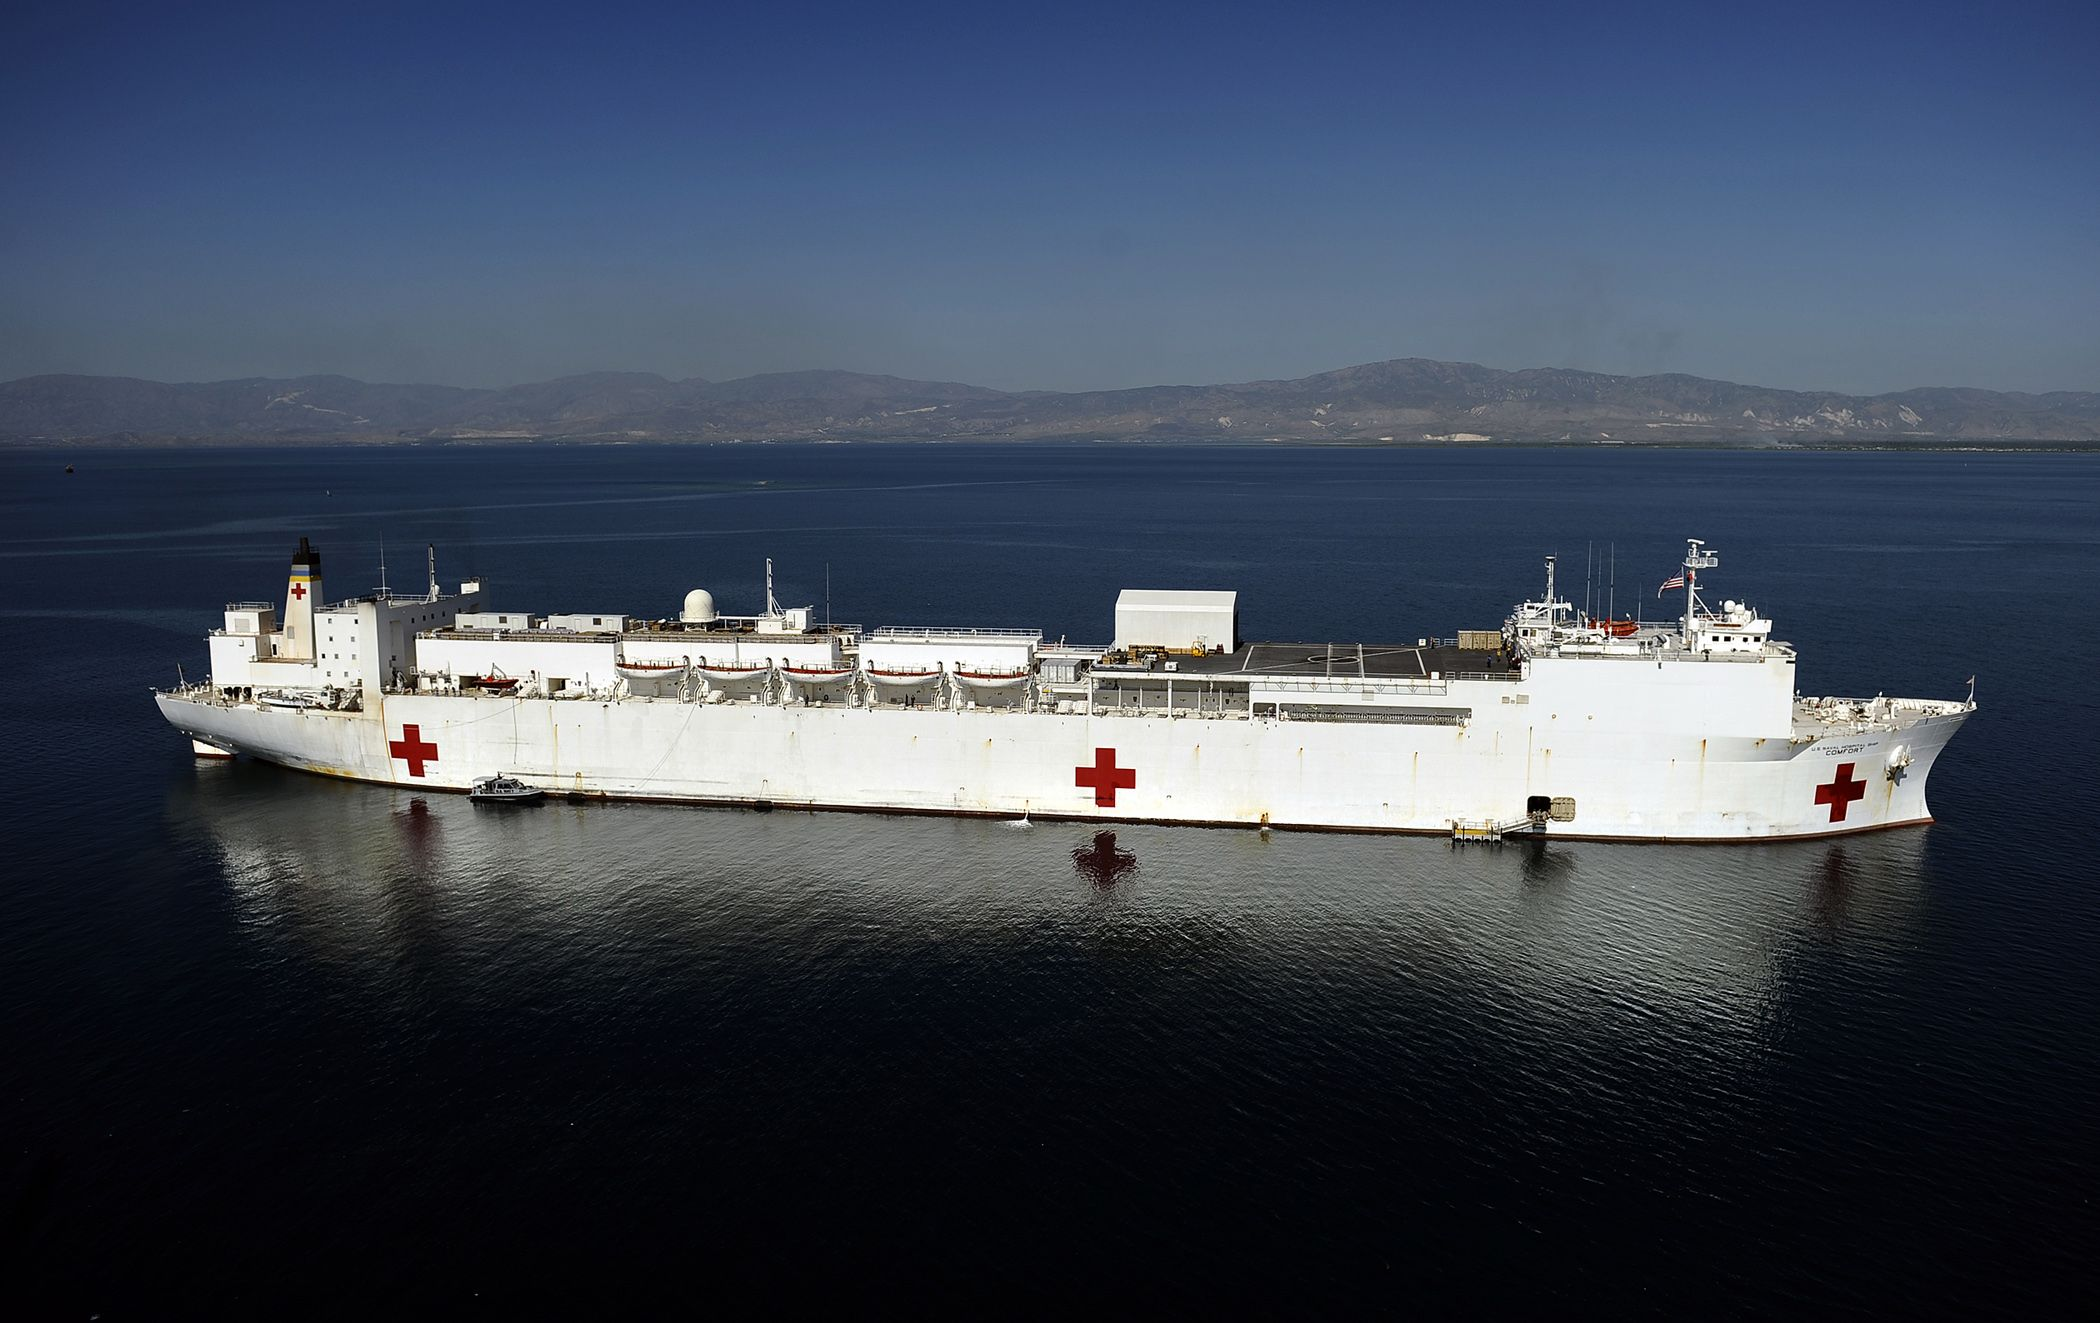 Us Usns Comfort T Ah 20 Is A 894 Mercy Class Hospital Ship Is A Non Commissioned Ship Owned By The Usn And Operationally C Hospital Peru Travel Ship